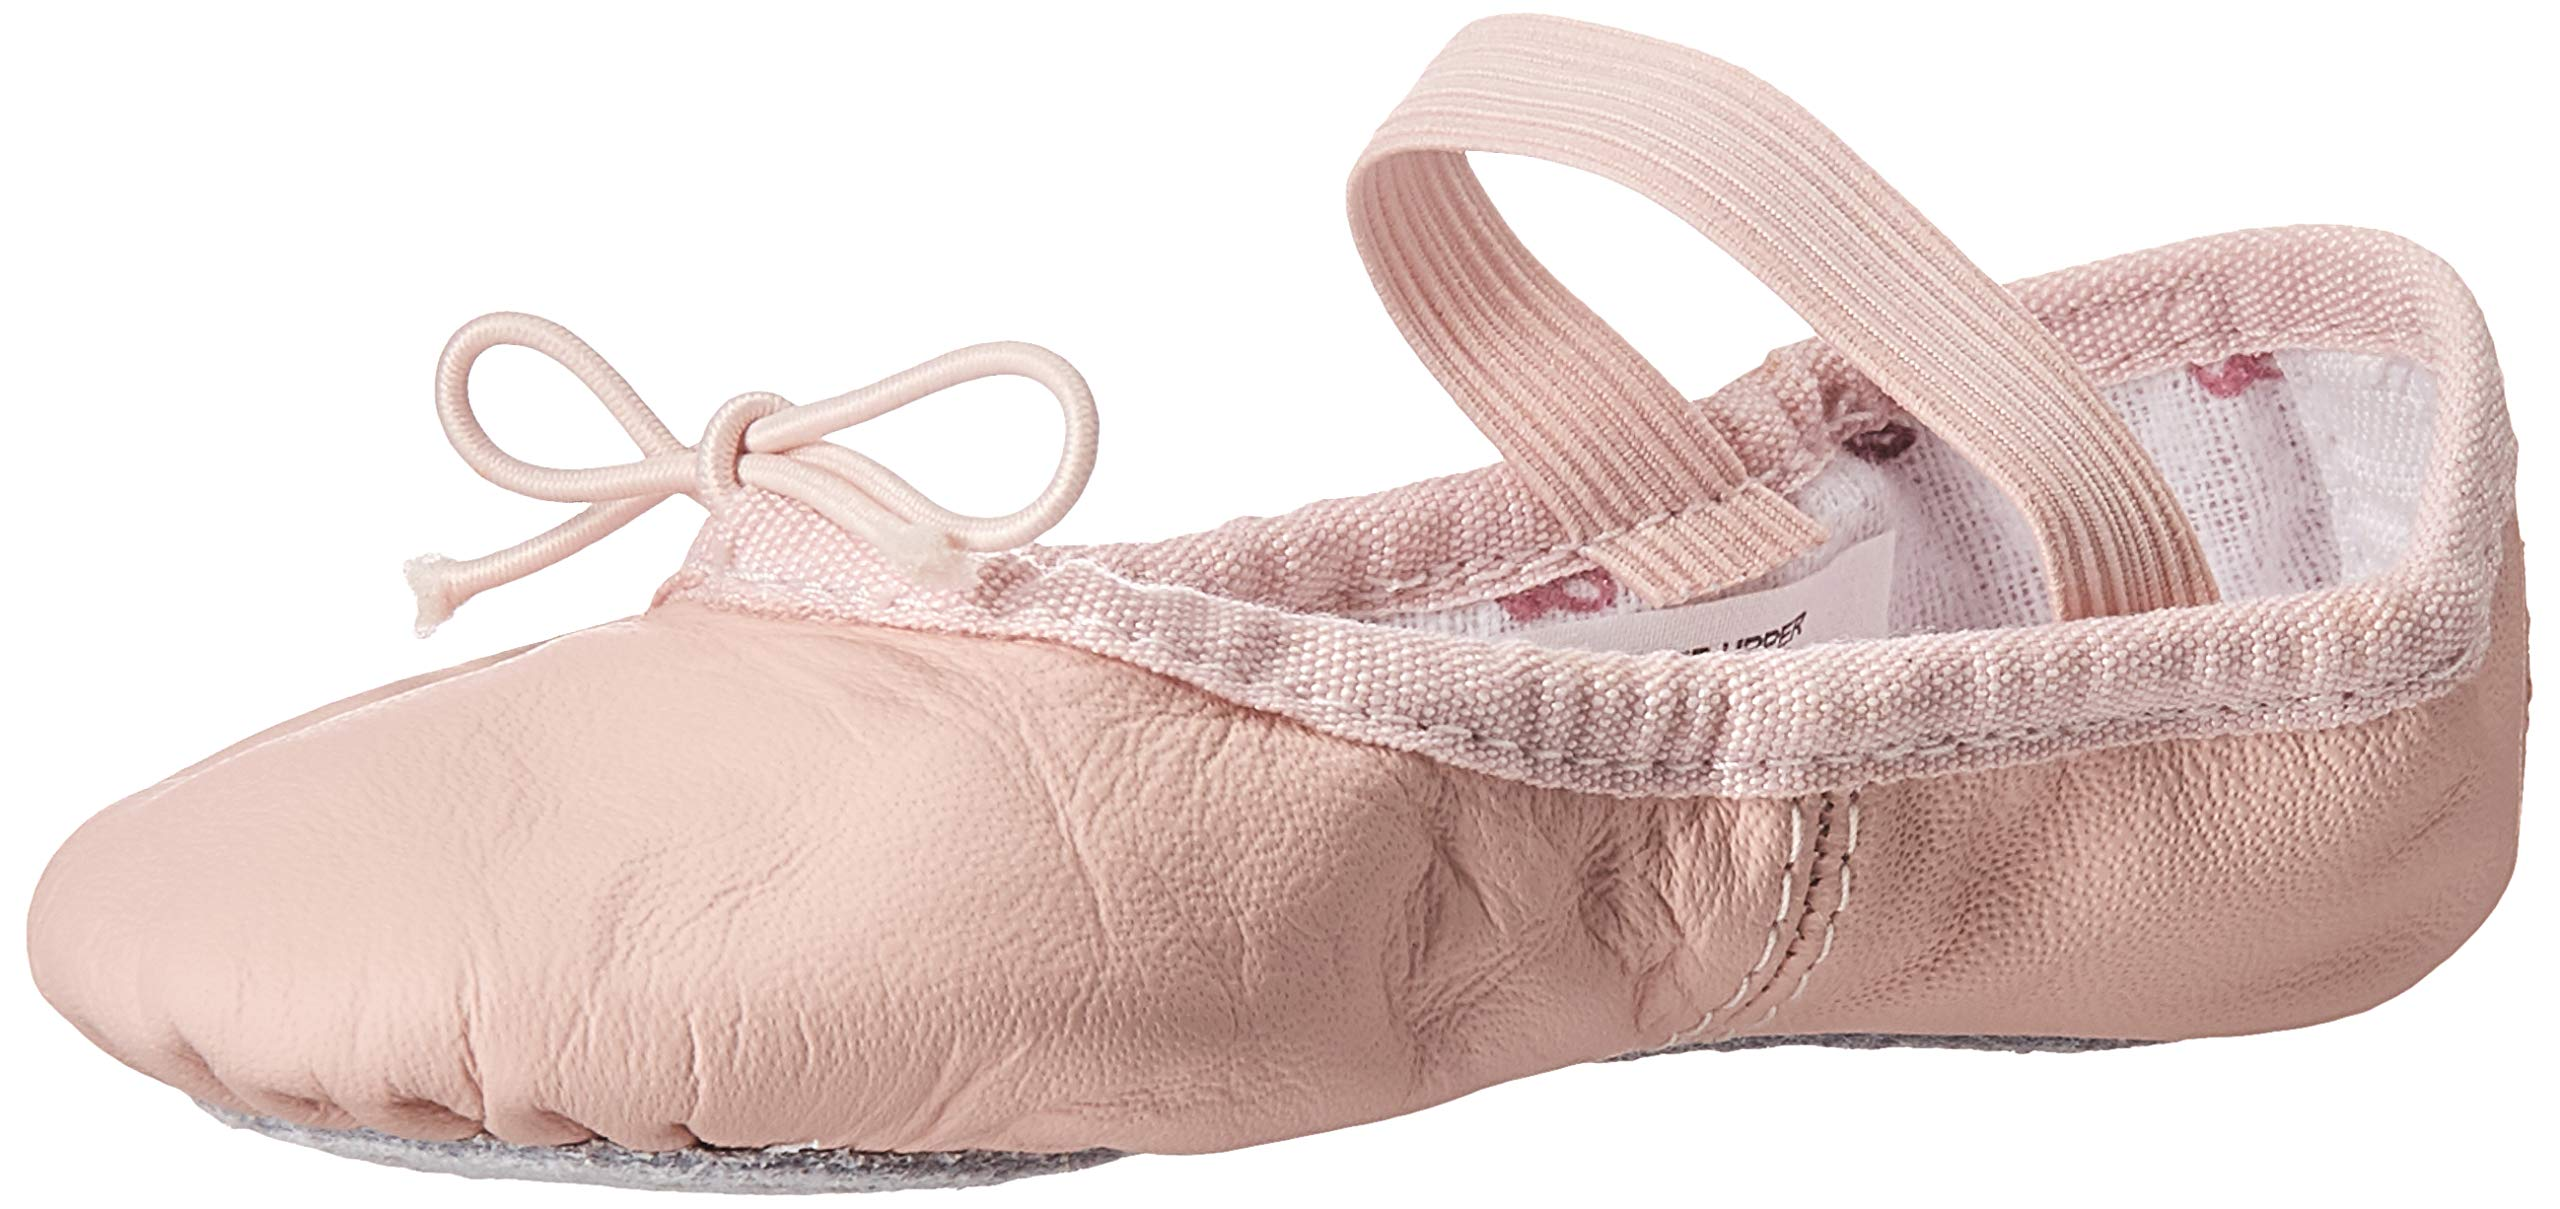 STELLE Leather Contemporary Pirouette Dance Half Sole Lyrical Turning Shoes for Ballet Jazz Girls